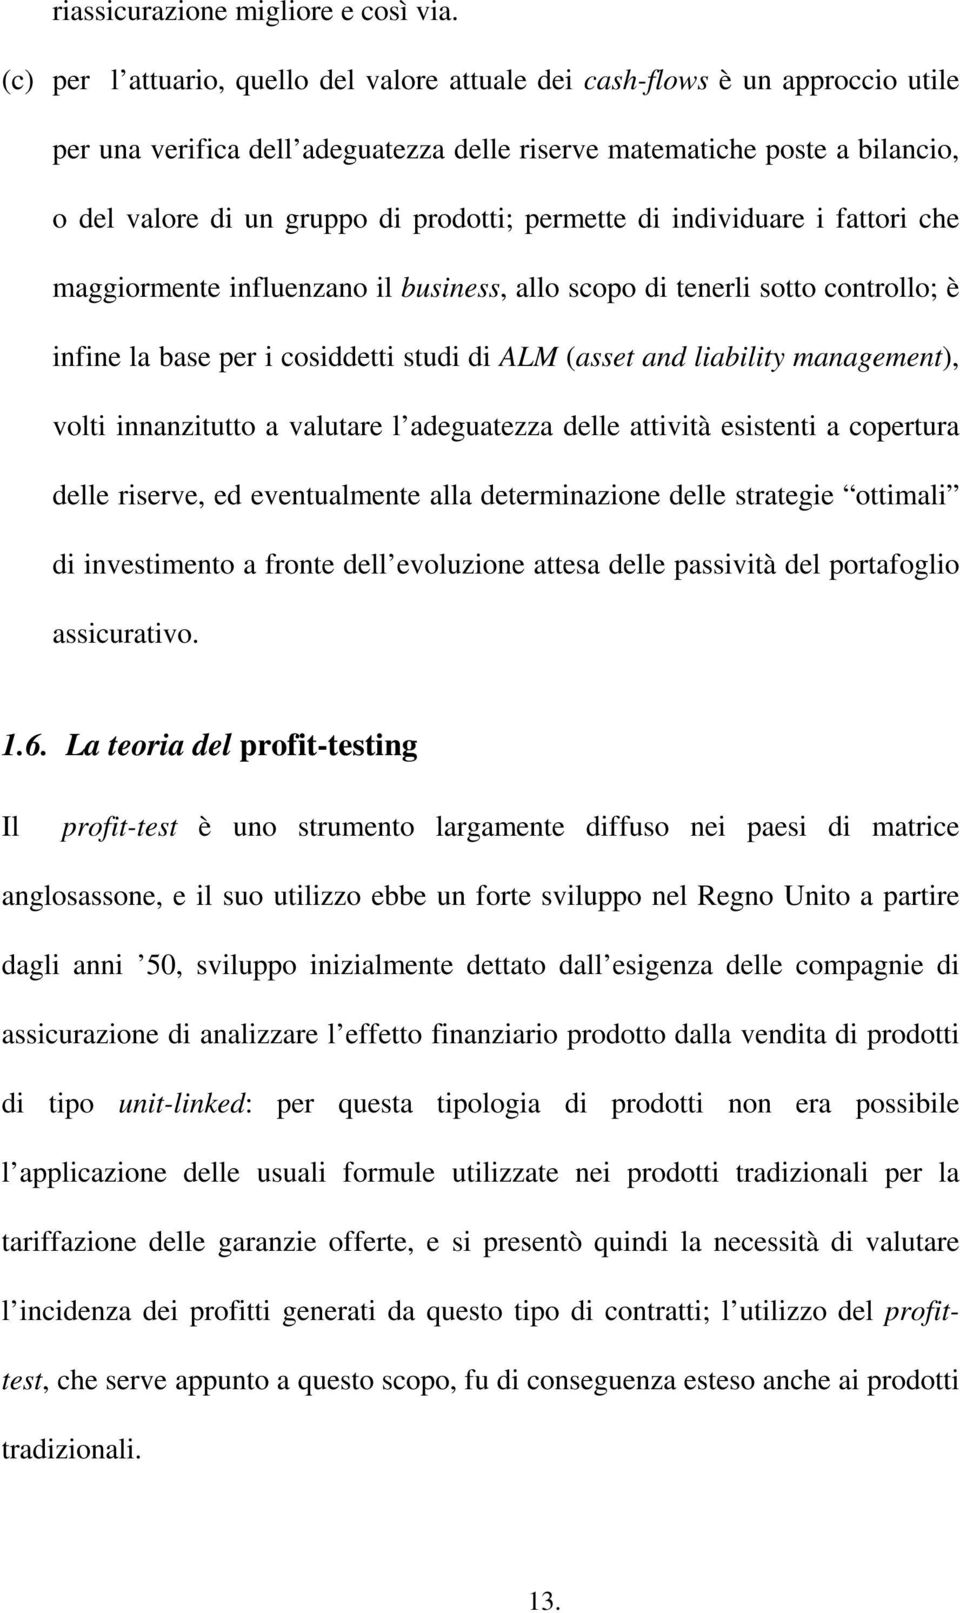 permette di individuare i fattori che maggiormente influenzano il business, allo scopo di tenerli sotto controllo; è infine la base per i cosiddetti studi di ALM (asset and liability management),